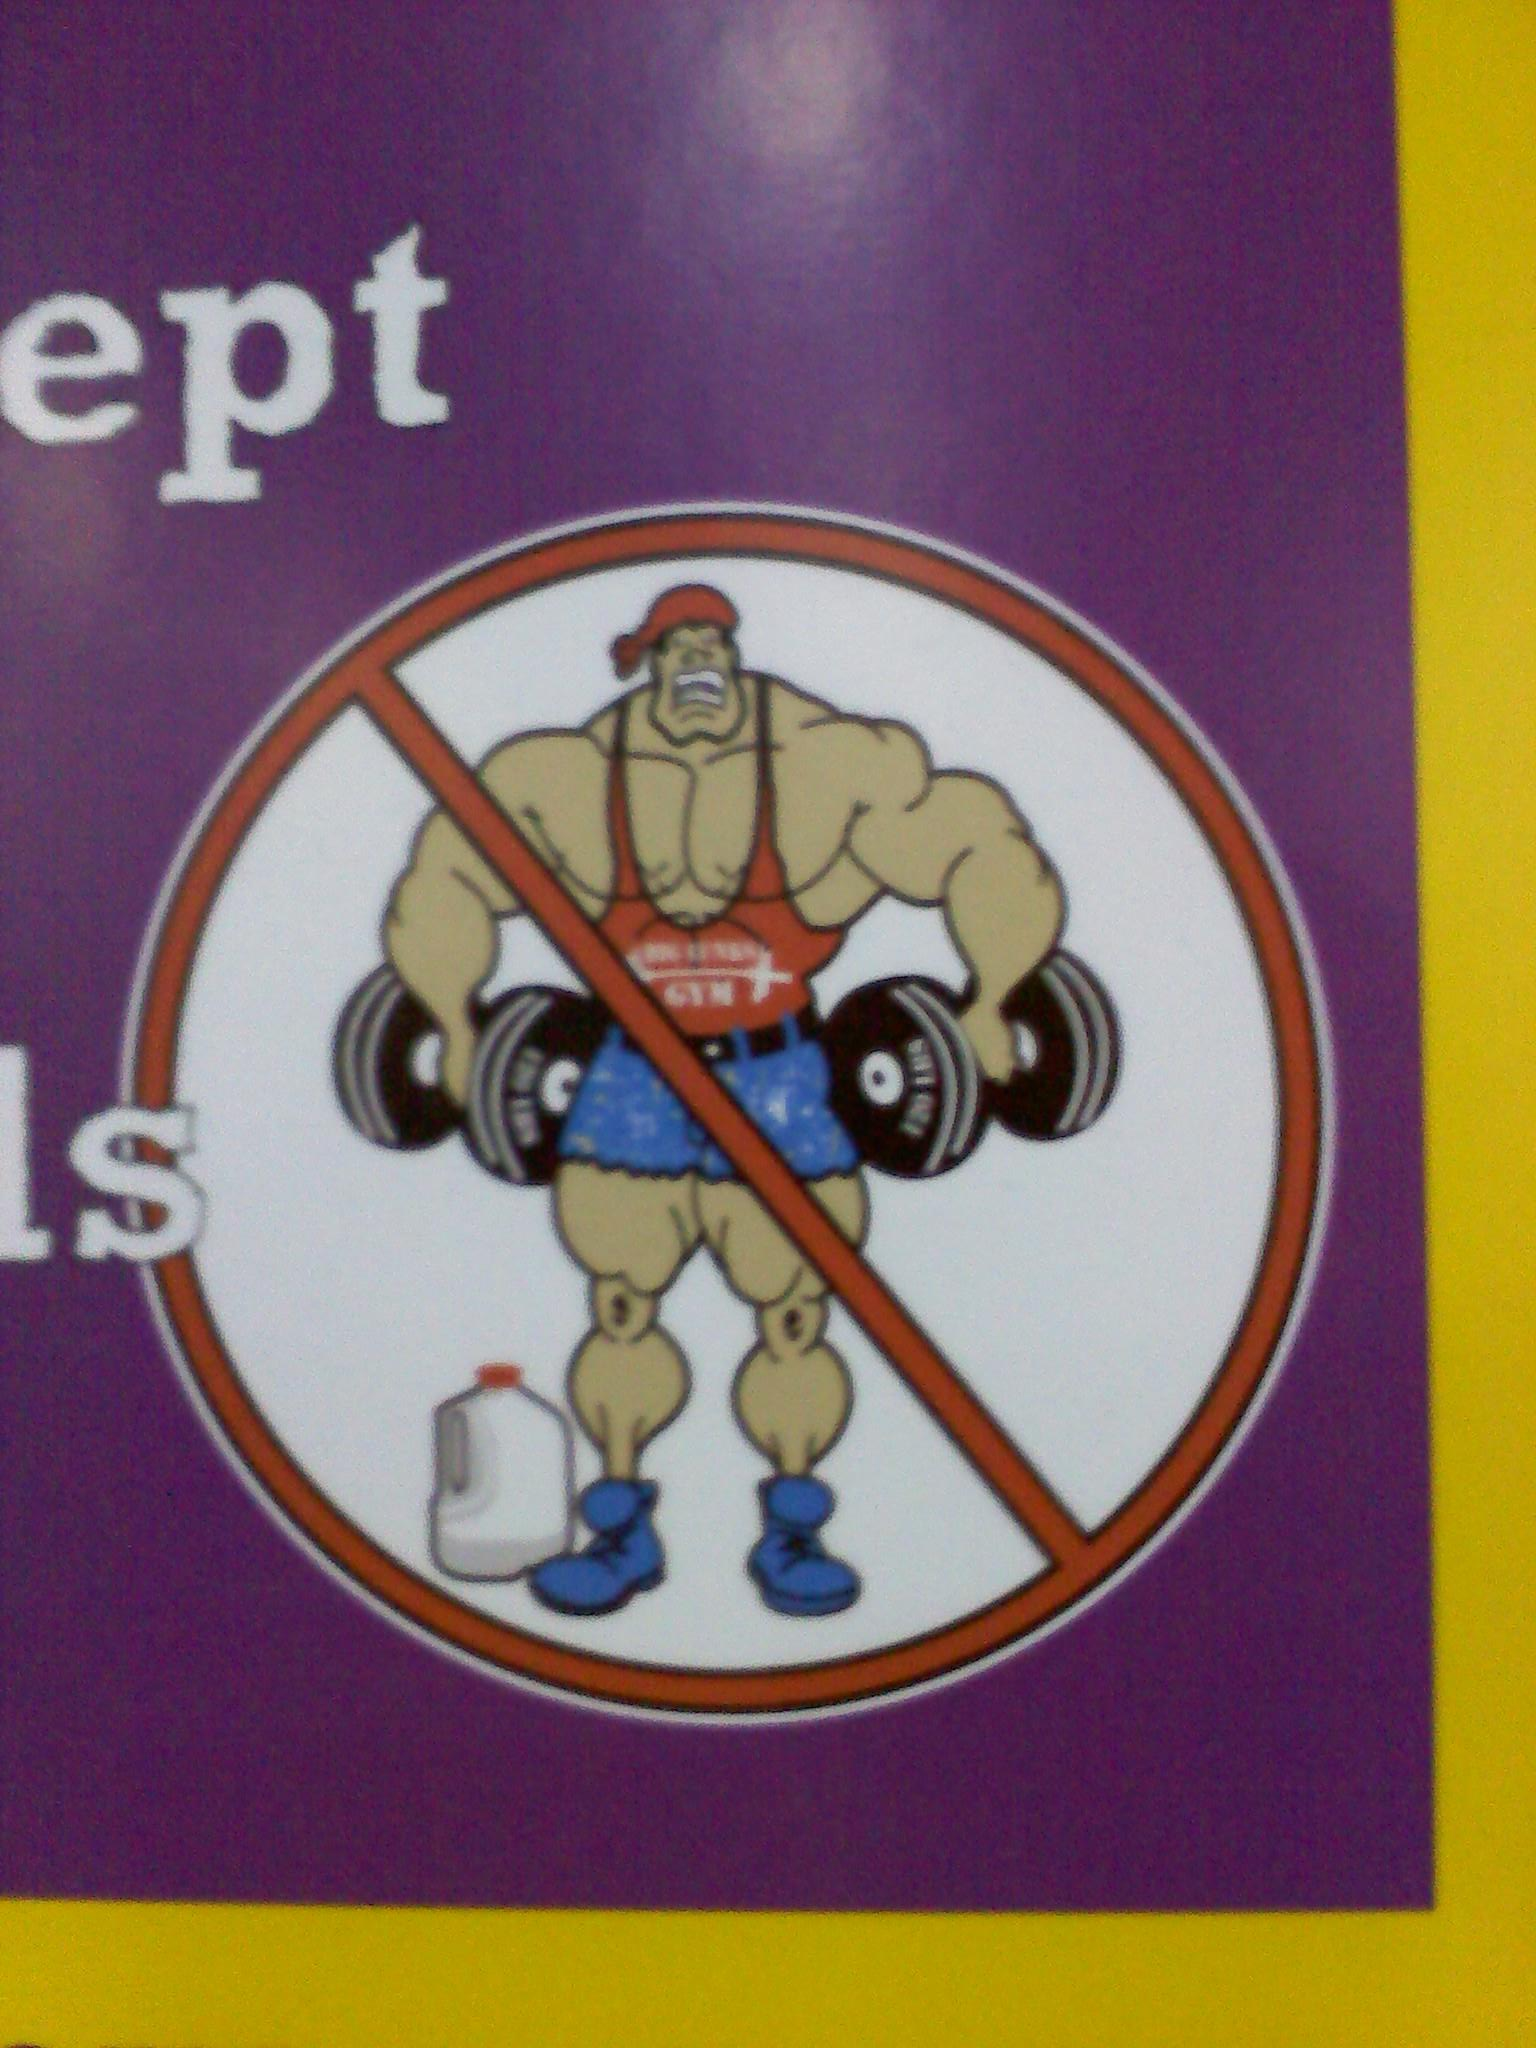 Planet Fitness Clothing Rules : planet, fitness, clothing, rules, Assessment, Planet, Fitness, Communications, Research